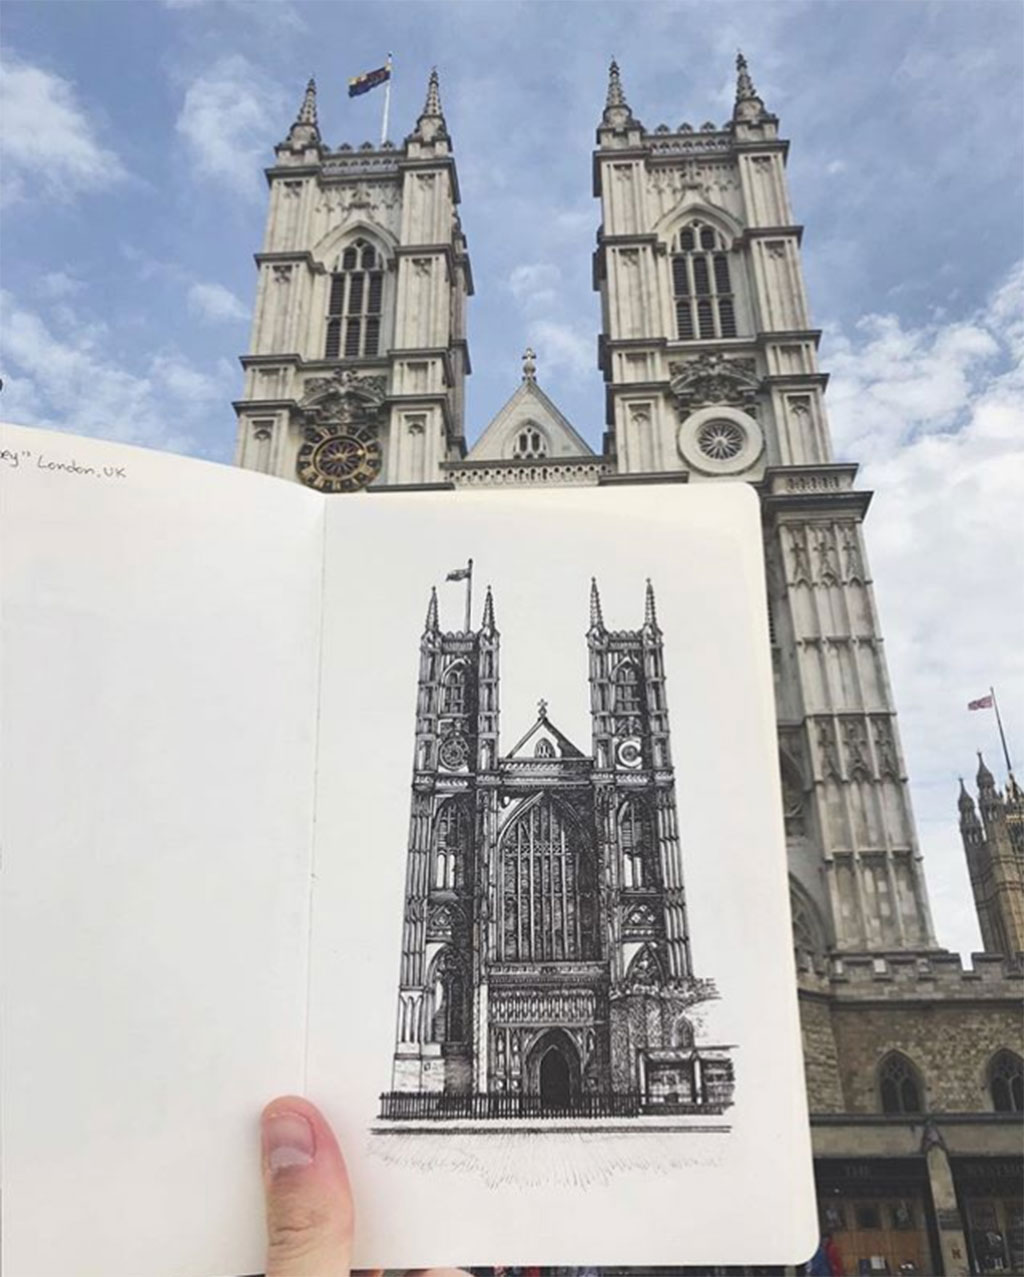 Drawing of Westminister Abbey with sketch held up to compare to the actual building